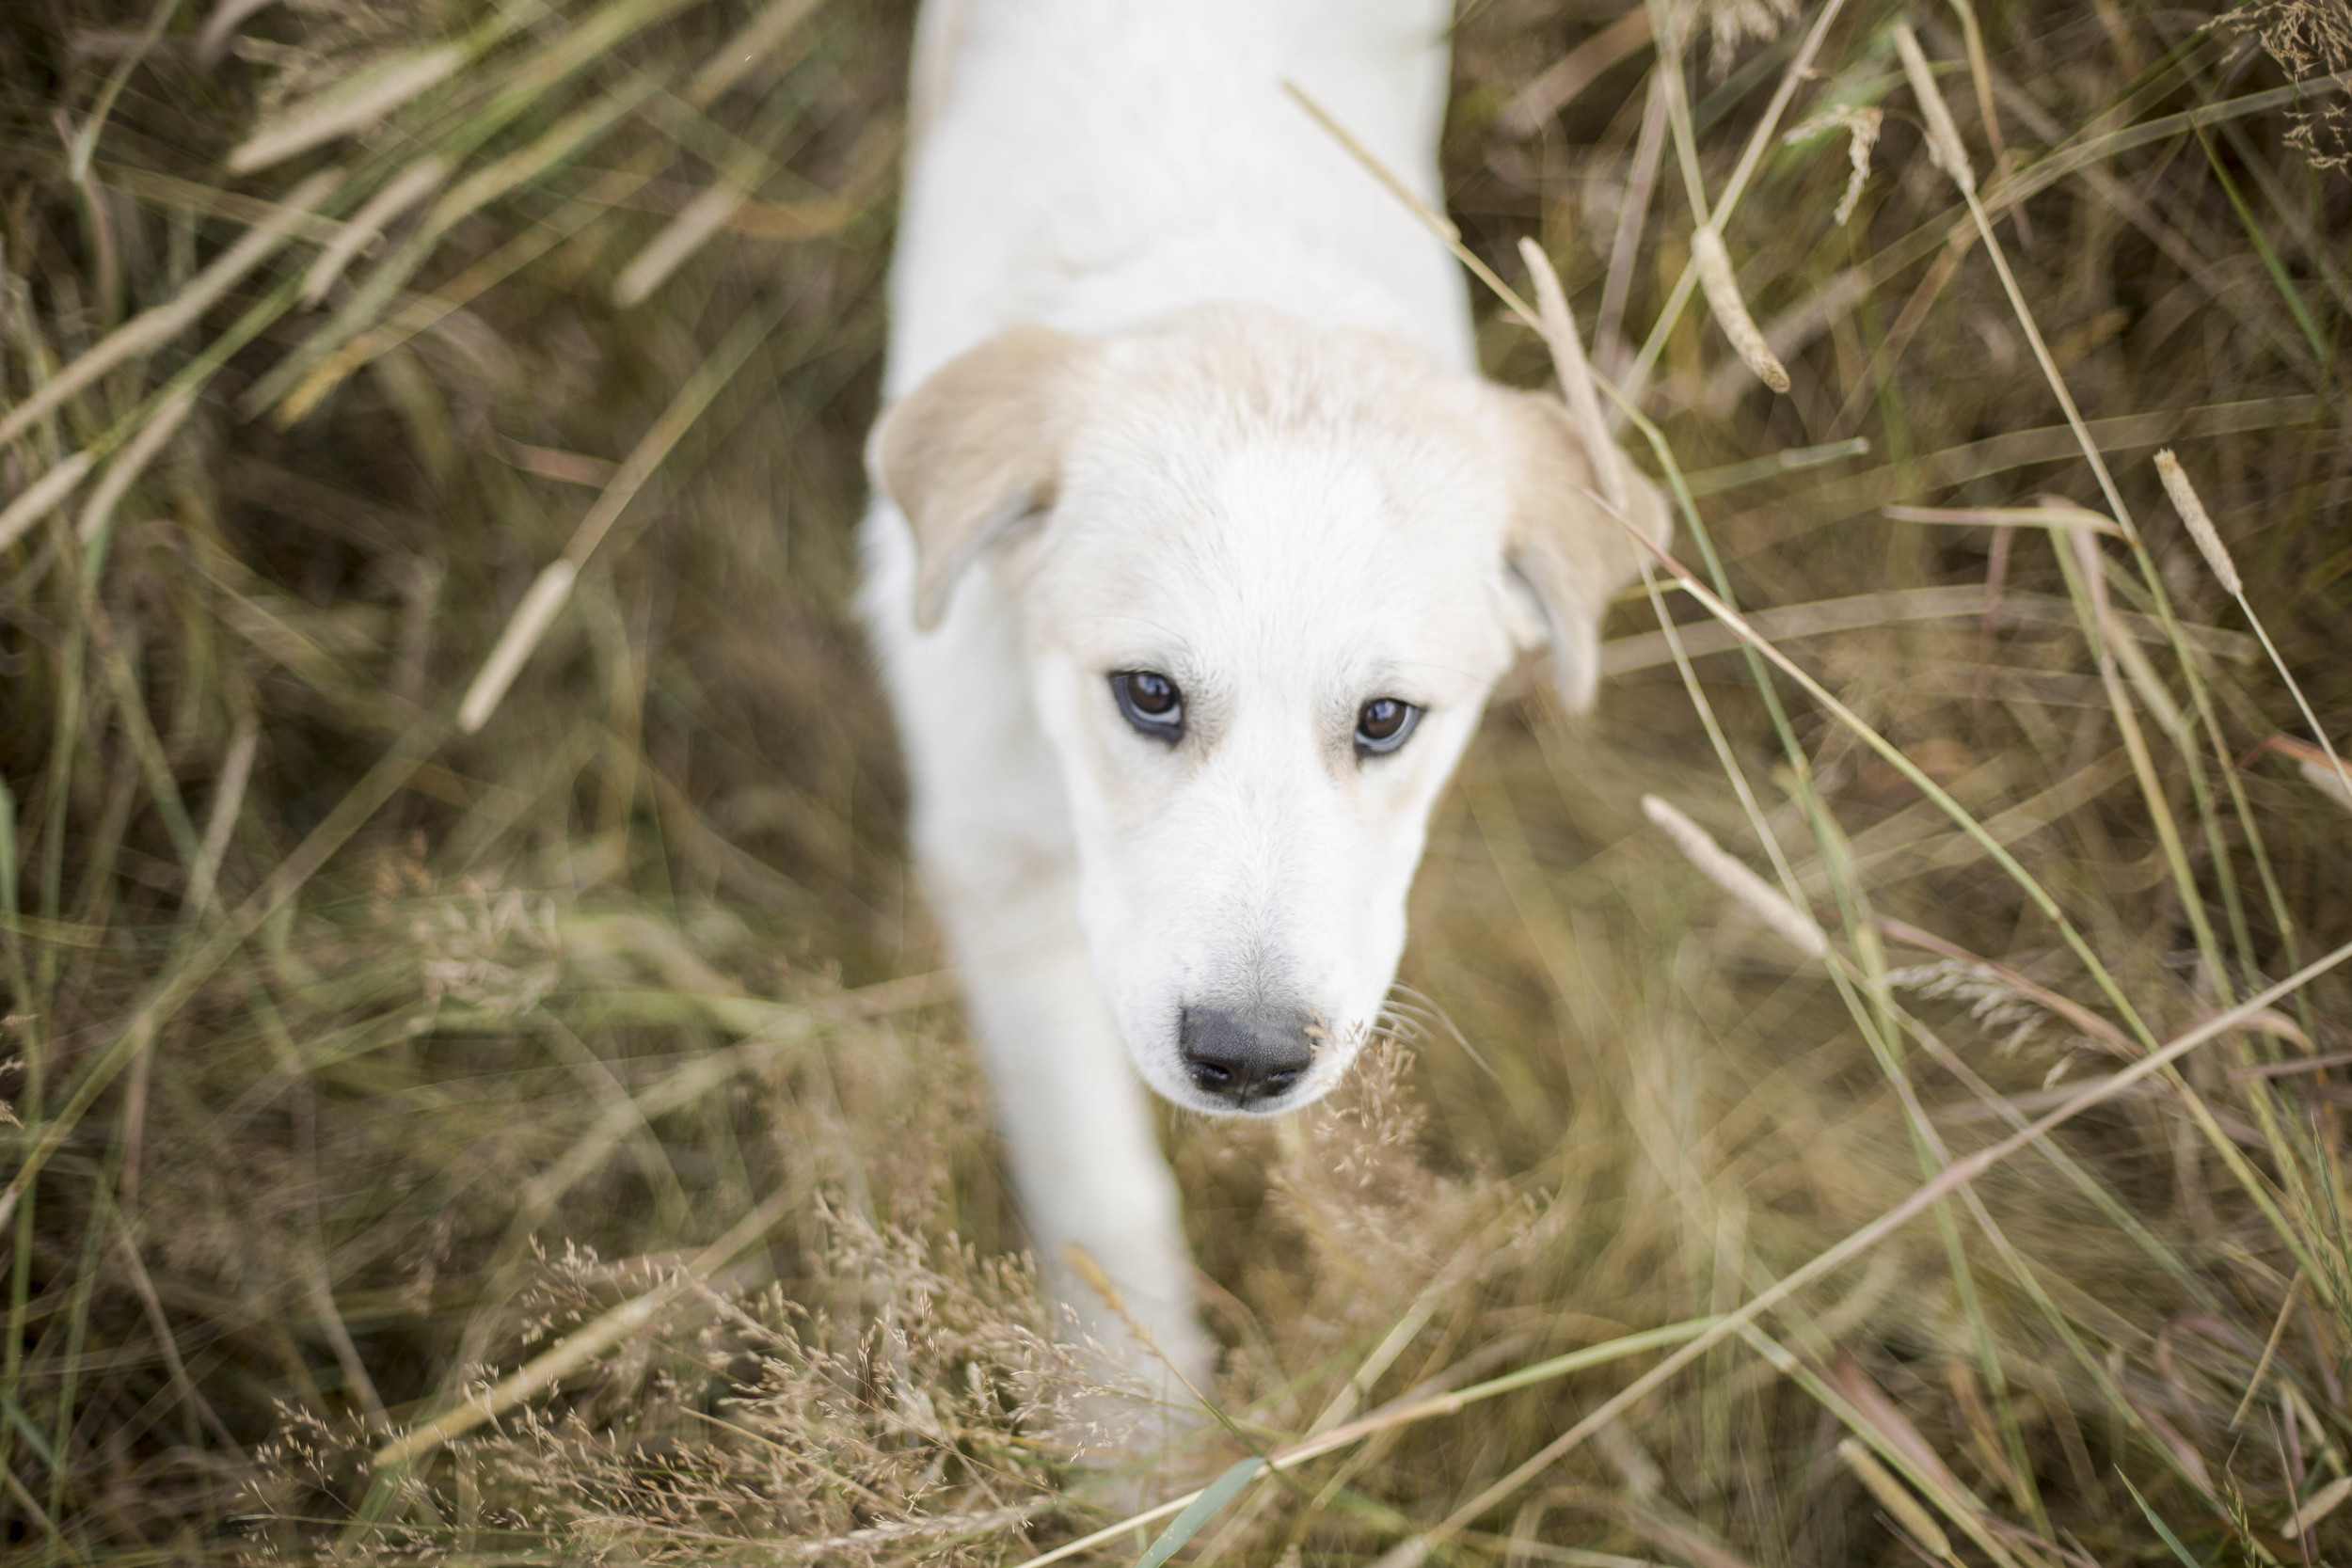 Bean is a White Pyrenees and is trained to guard the sheep of Plenty Wild Farms against predators. (British Columbia)